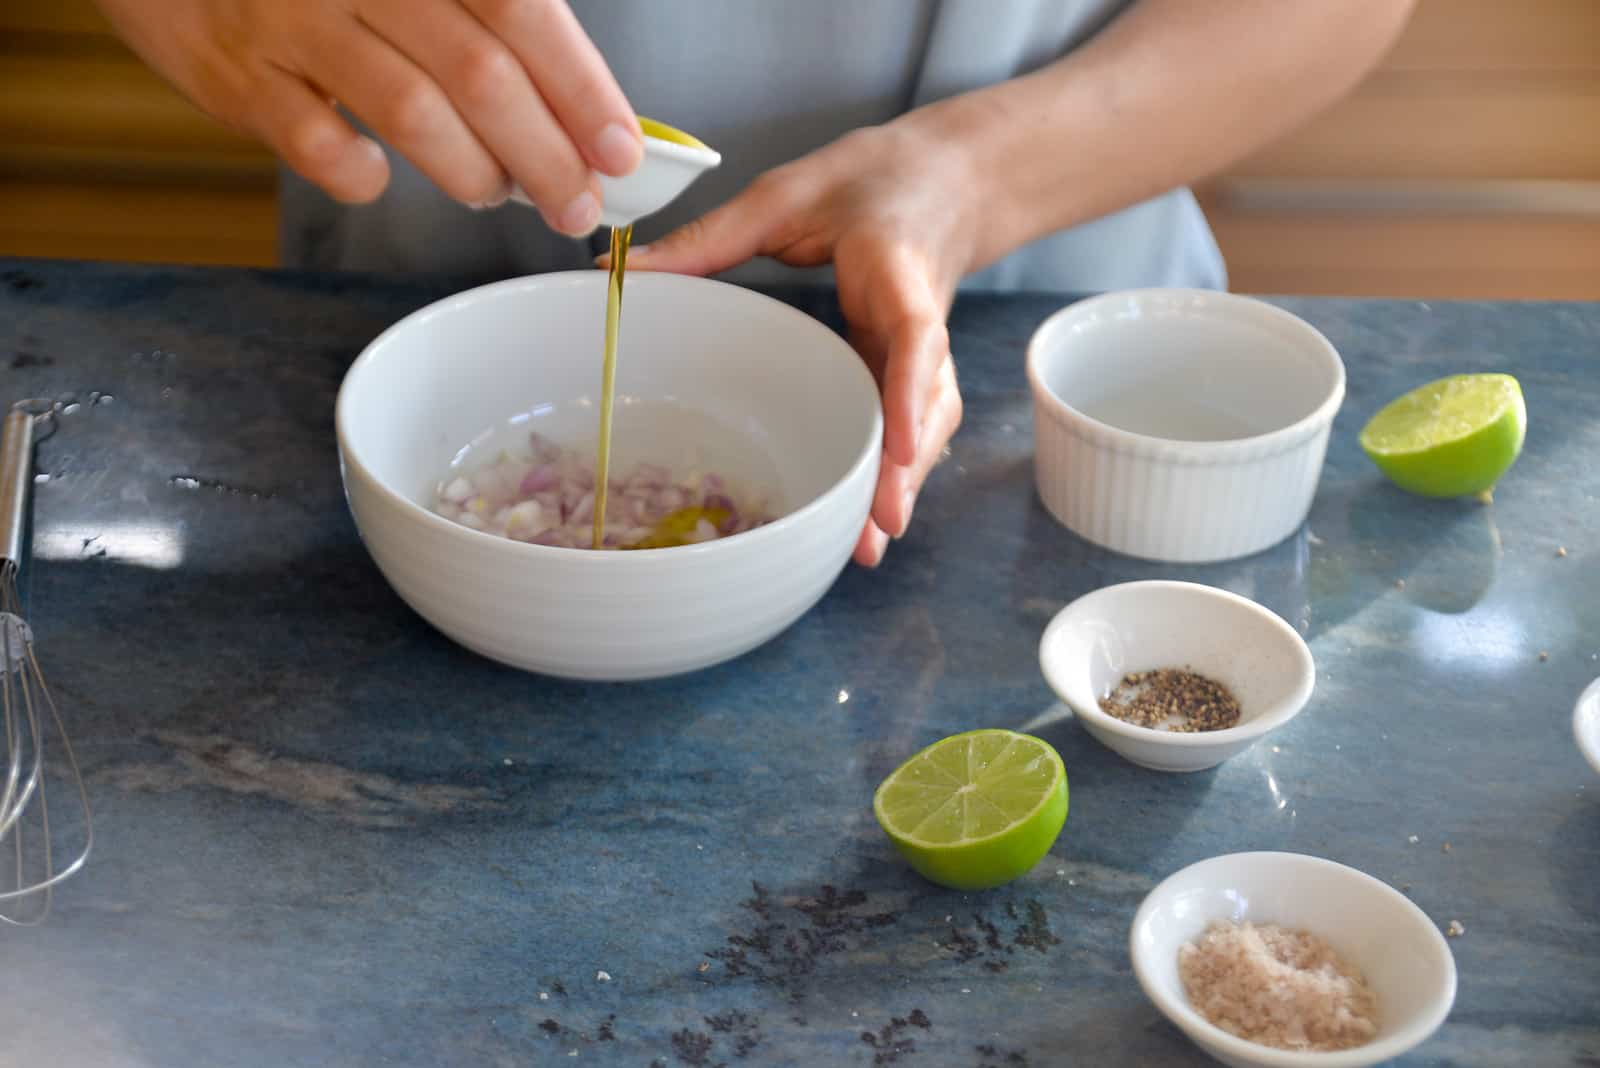 woman's hand drizzling olive oil into a white bowl with other ingredients